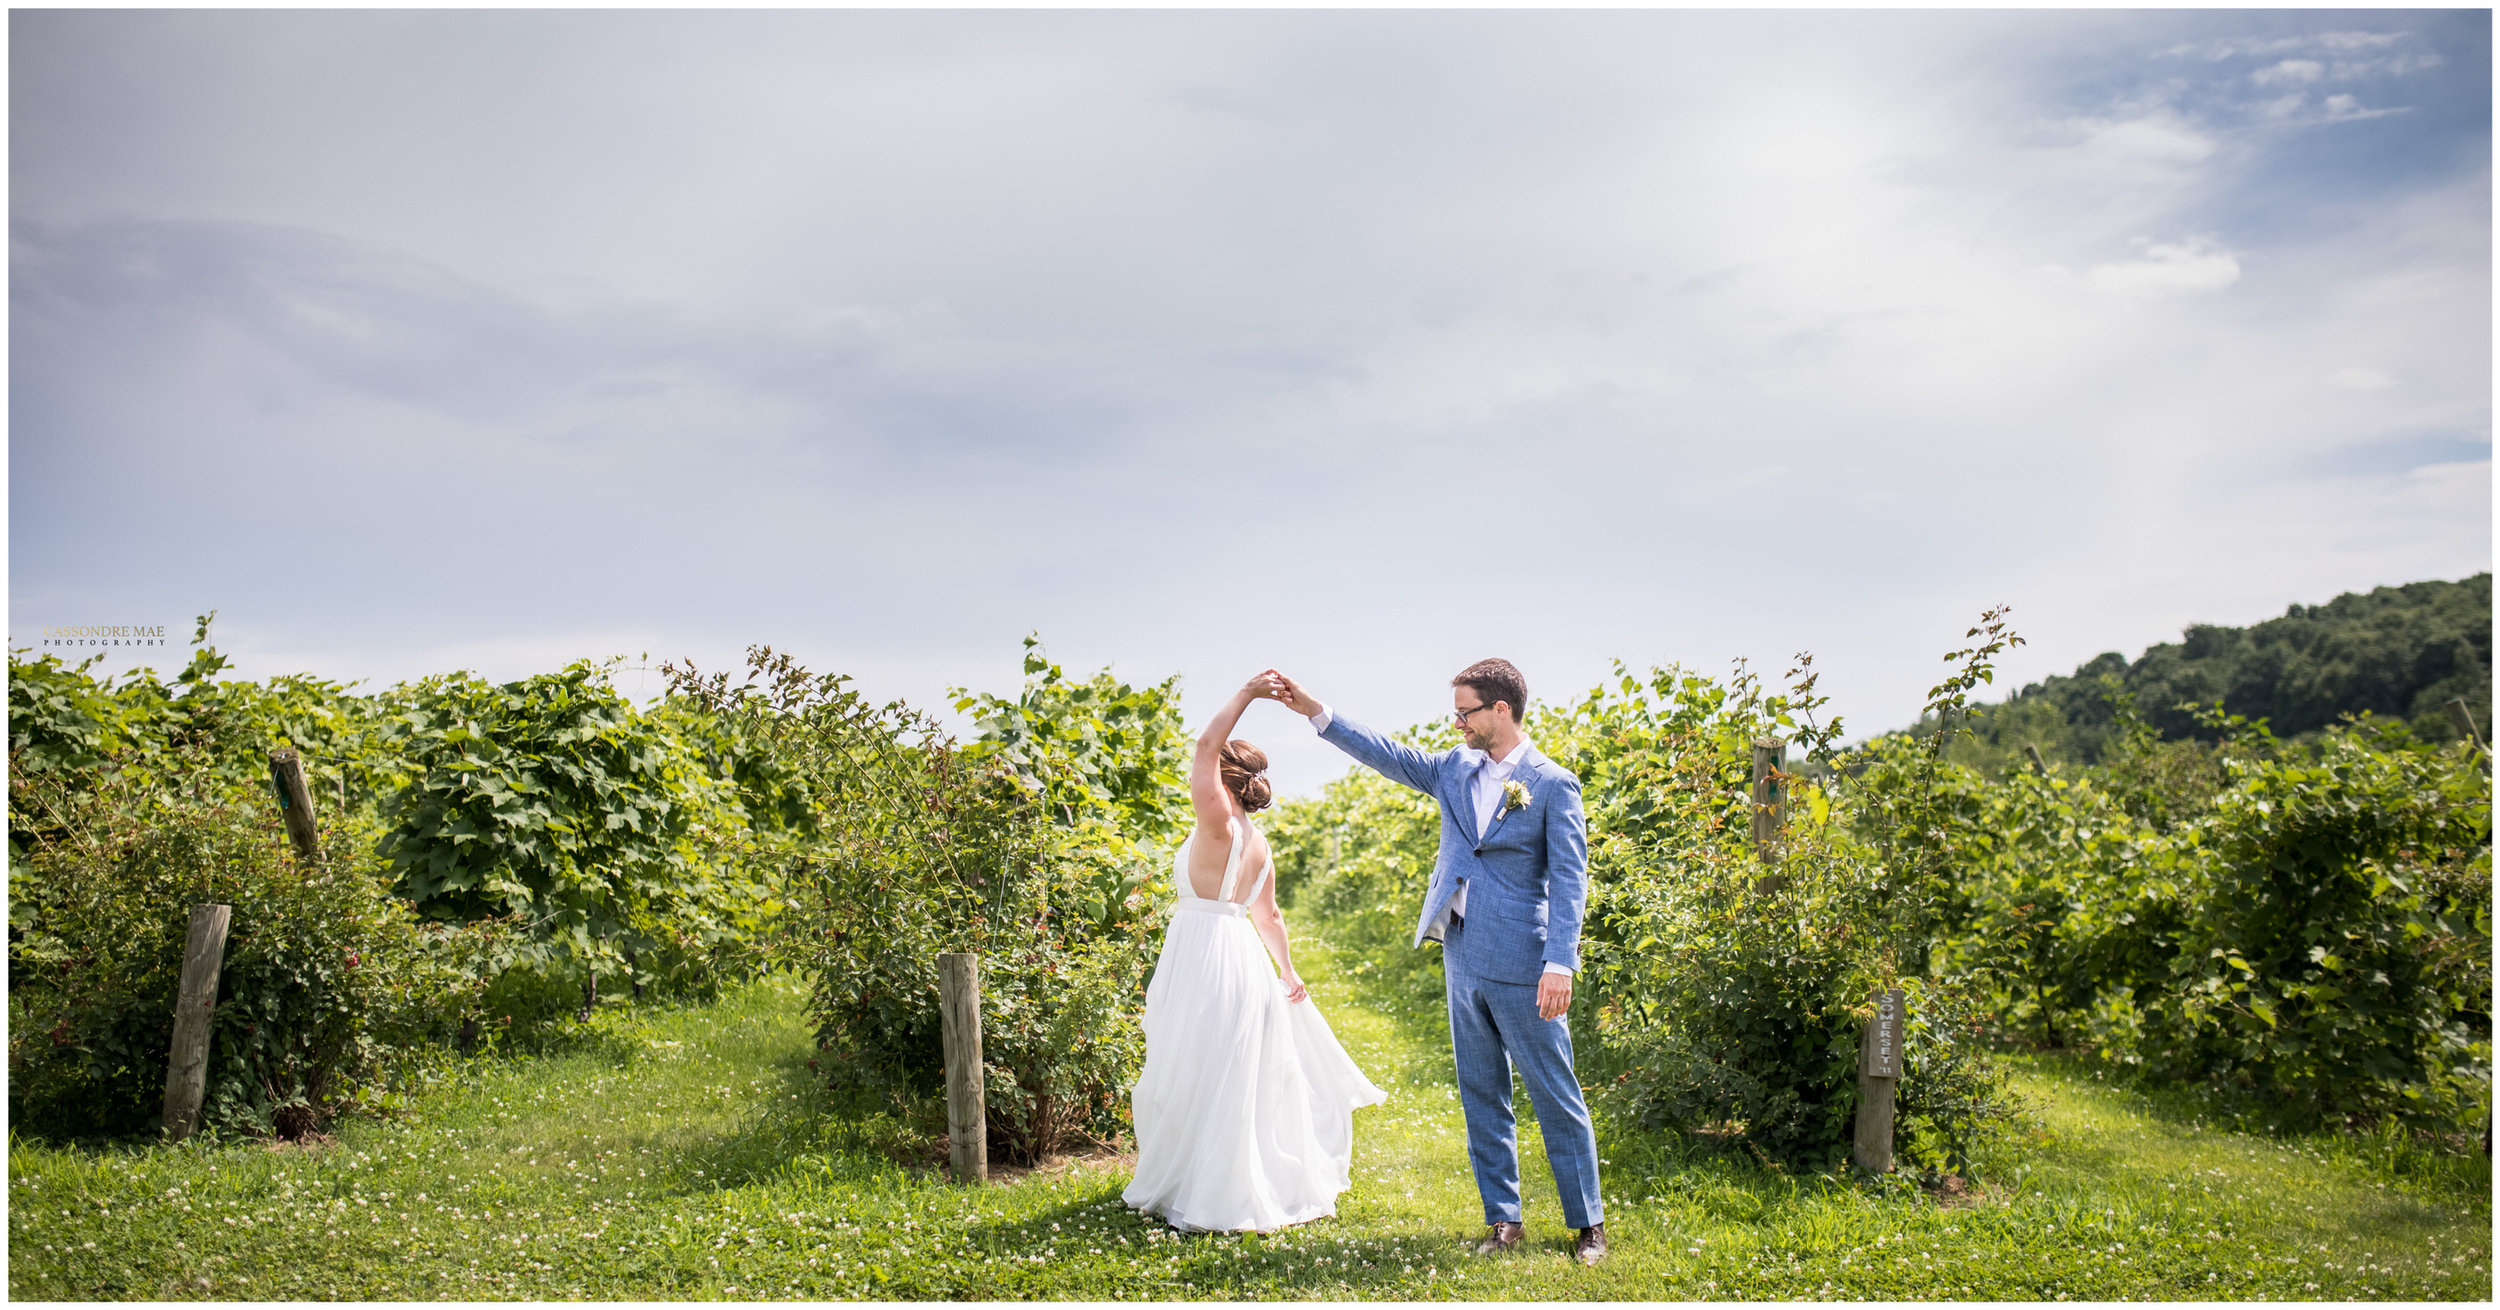 Cassondre Mae Photography Nostrano Vineyard 21.jpg